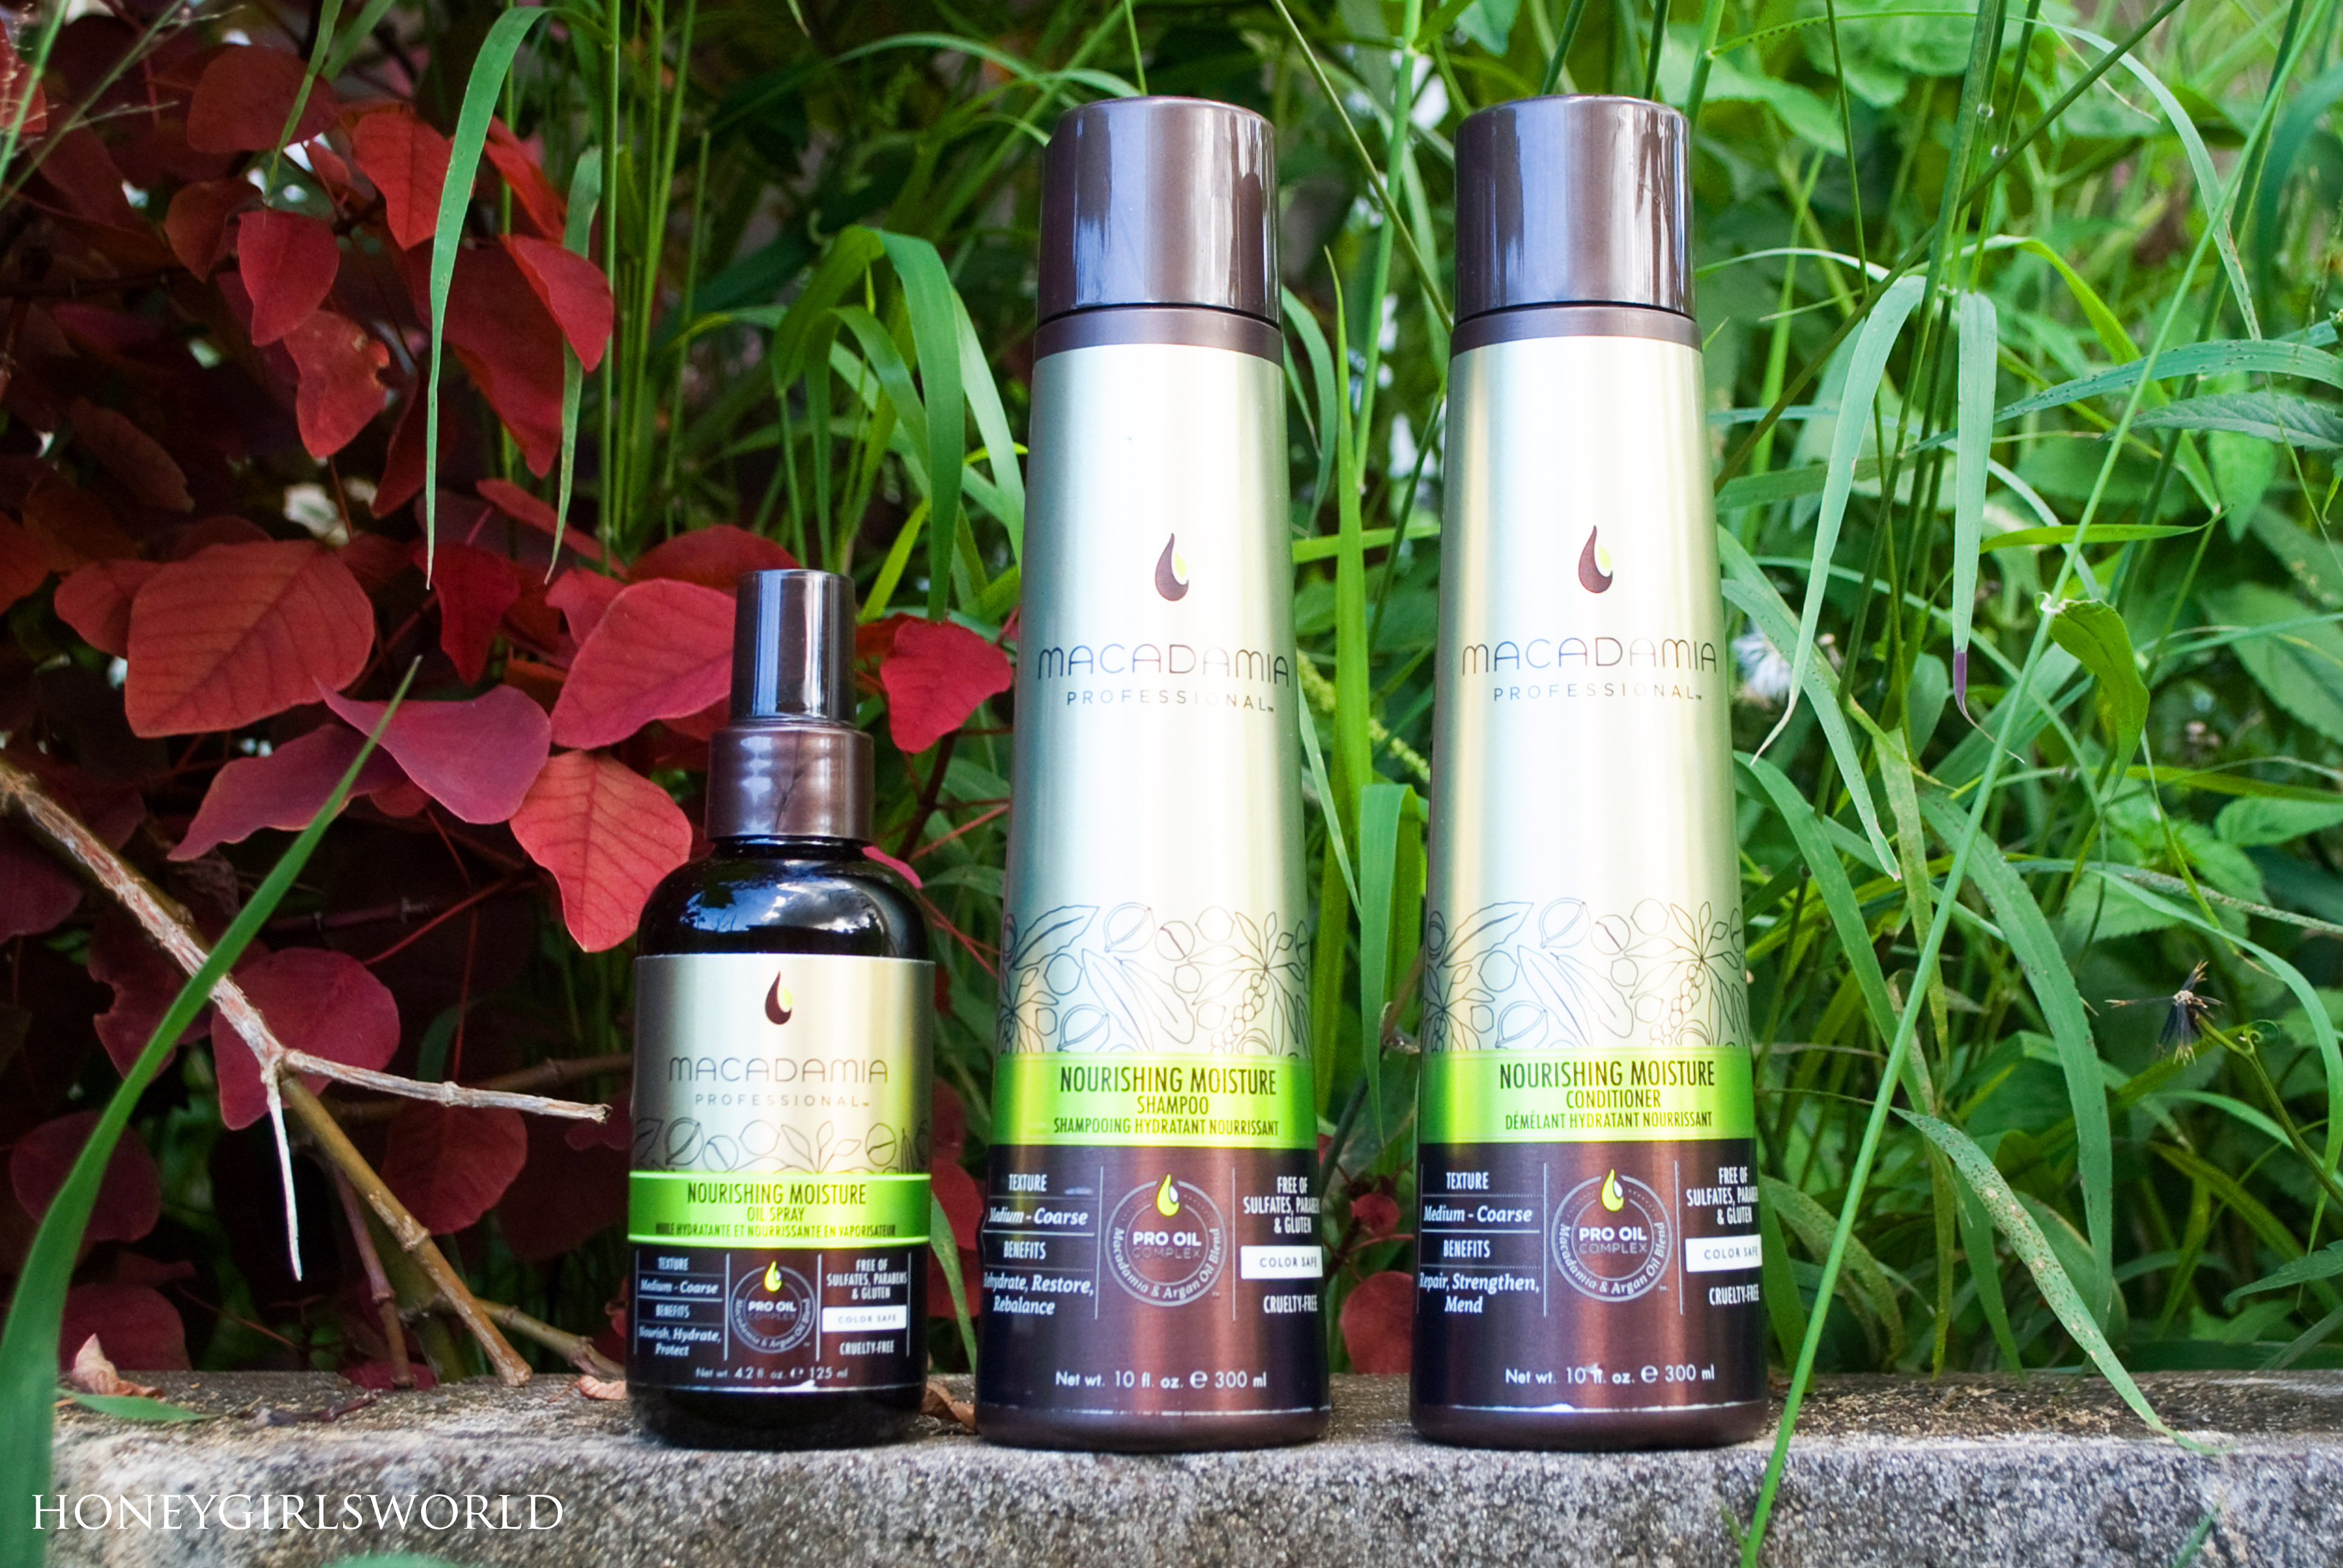 Dear Locks – My Journey To Happy Hair With Macadamia Professional Hair Care